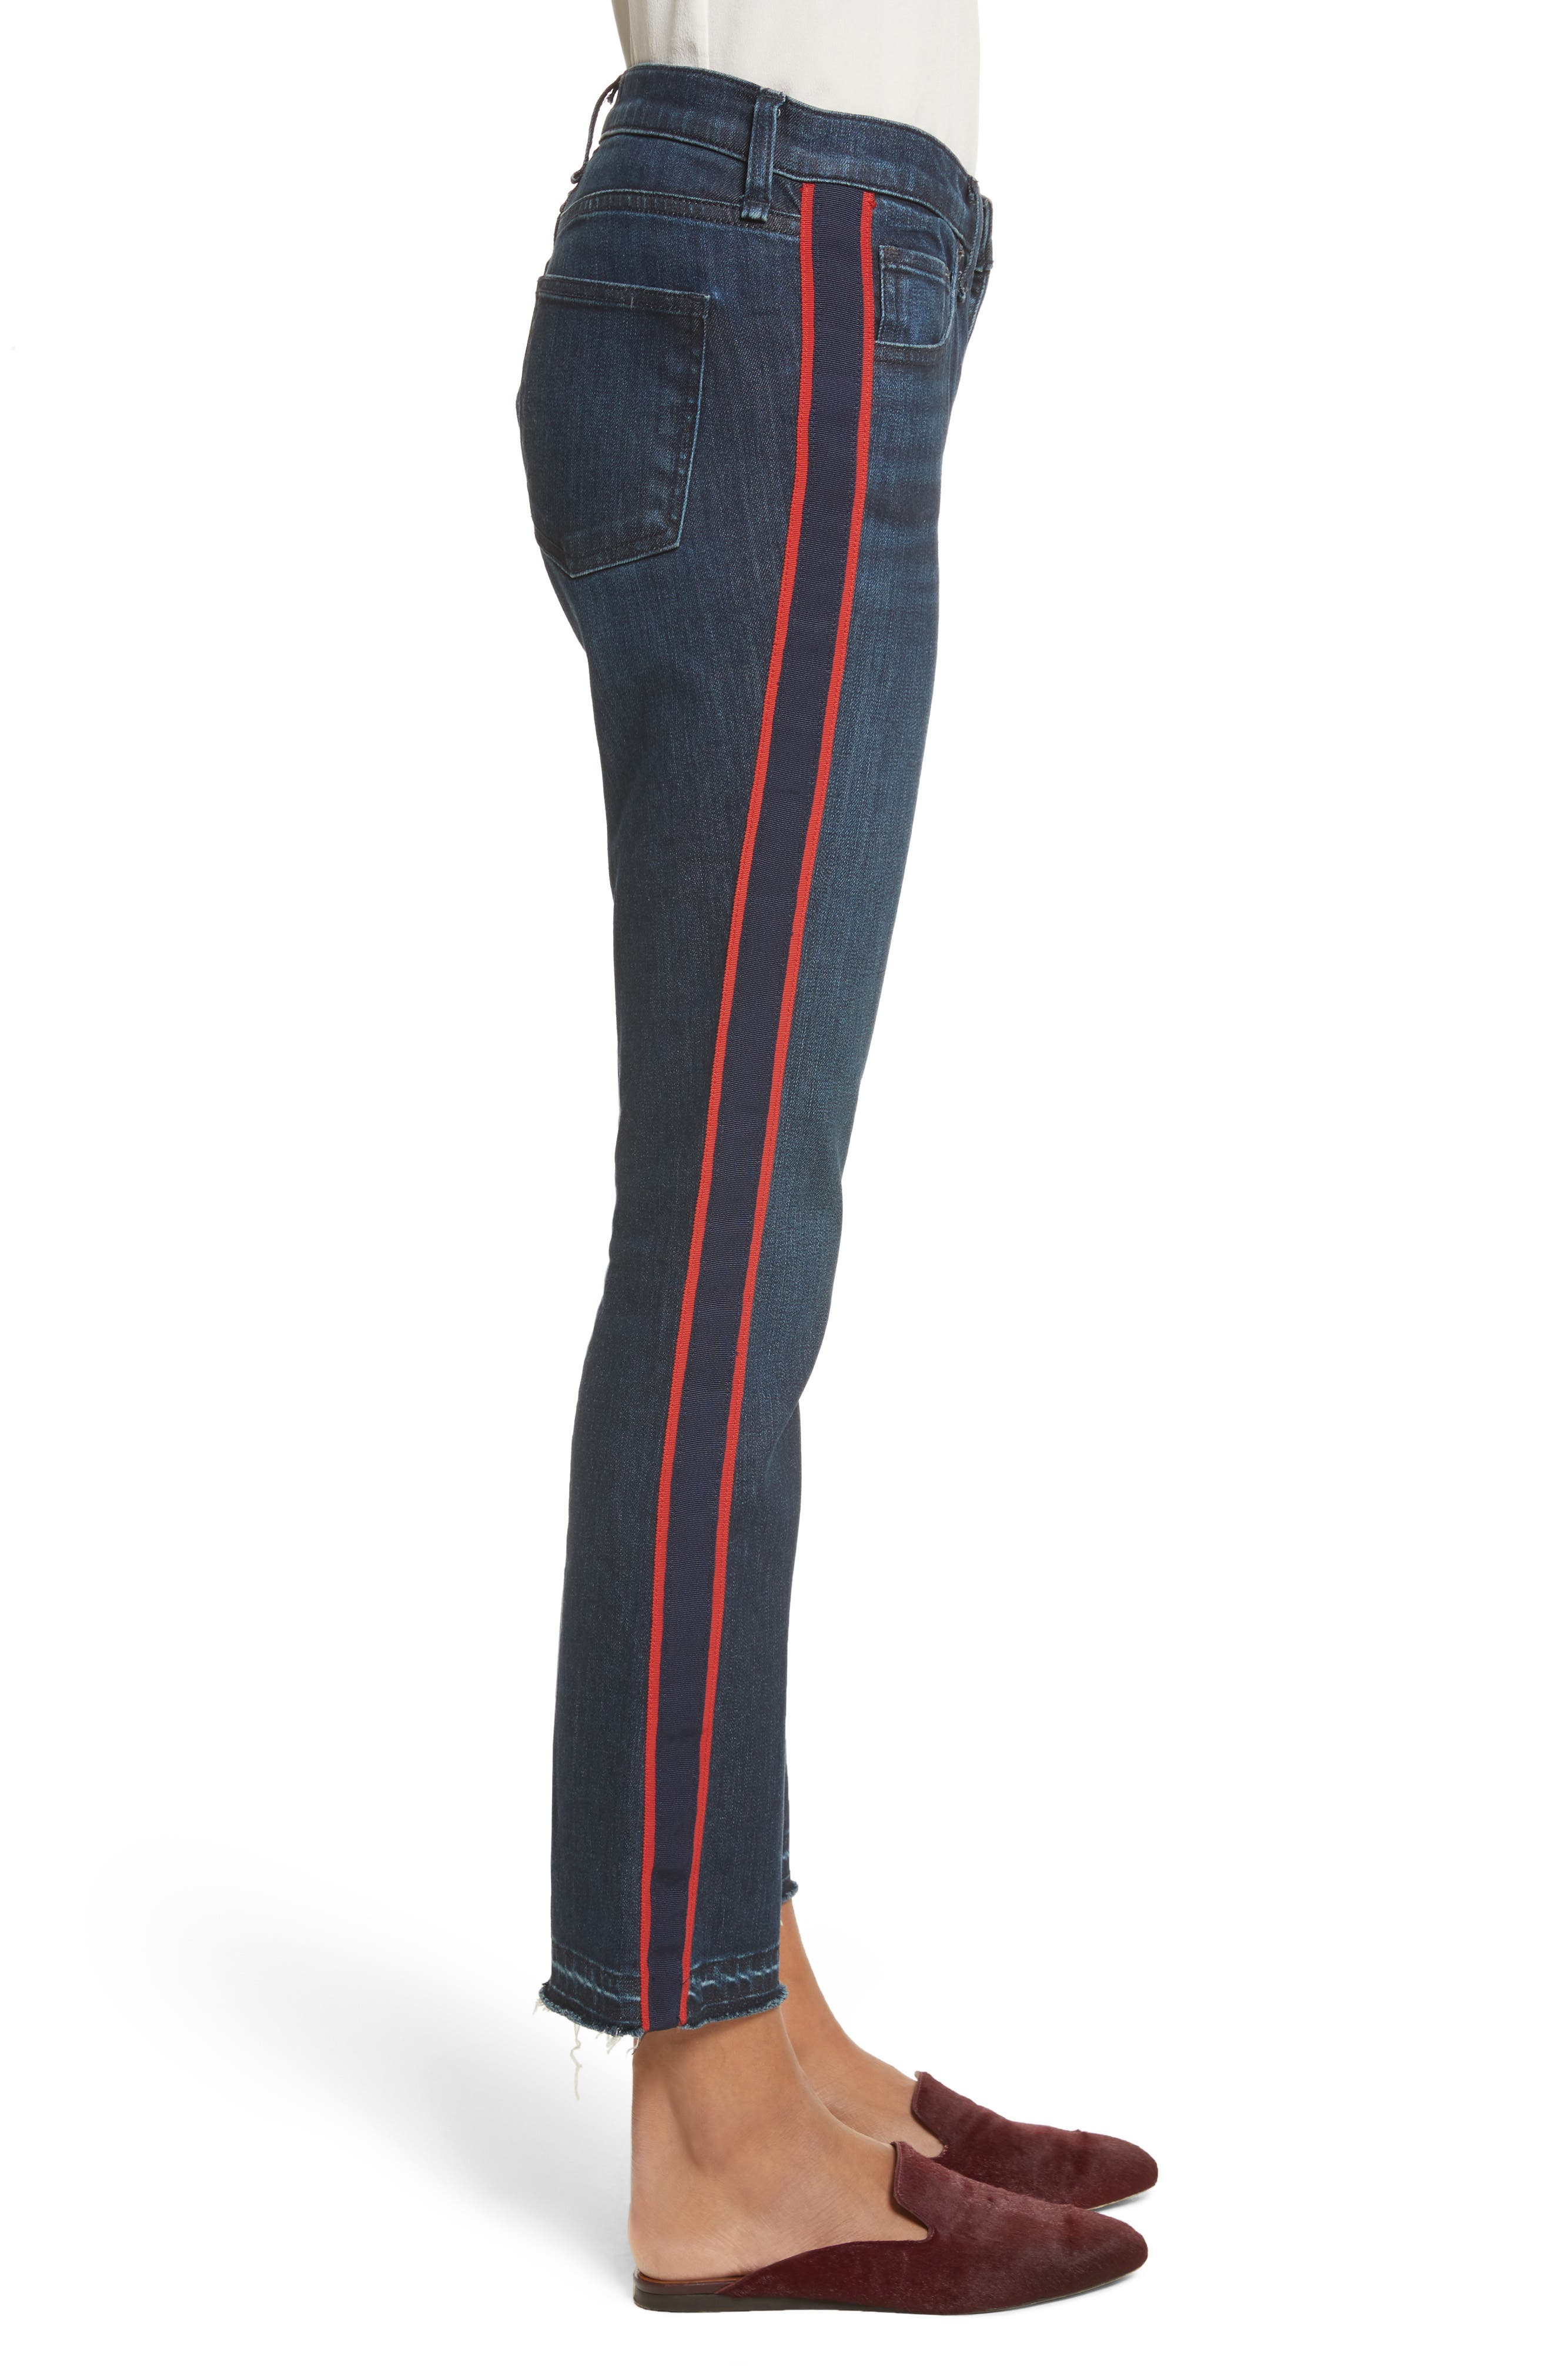 VERONICA BEARD, Carolyn Tuxedo Stripe Baby Boot Crop Jeans, Alternate thumbnail 3, color, MIDNIGHT FRAY/ RED